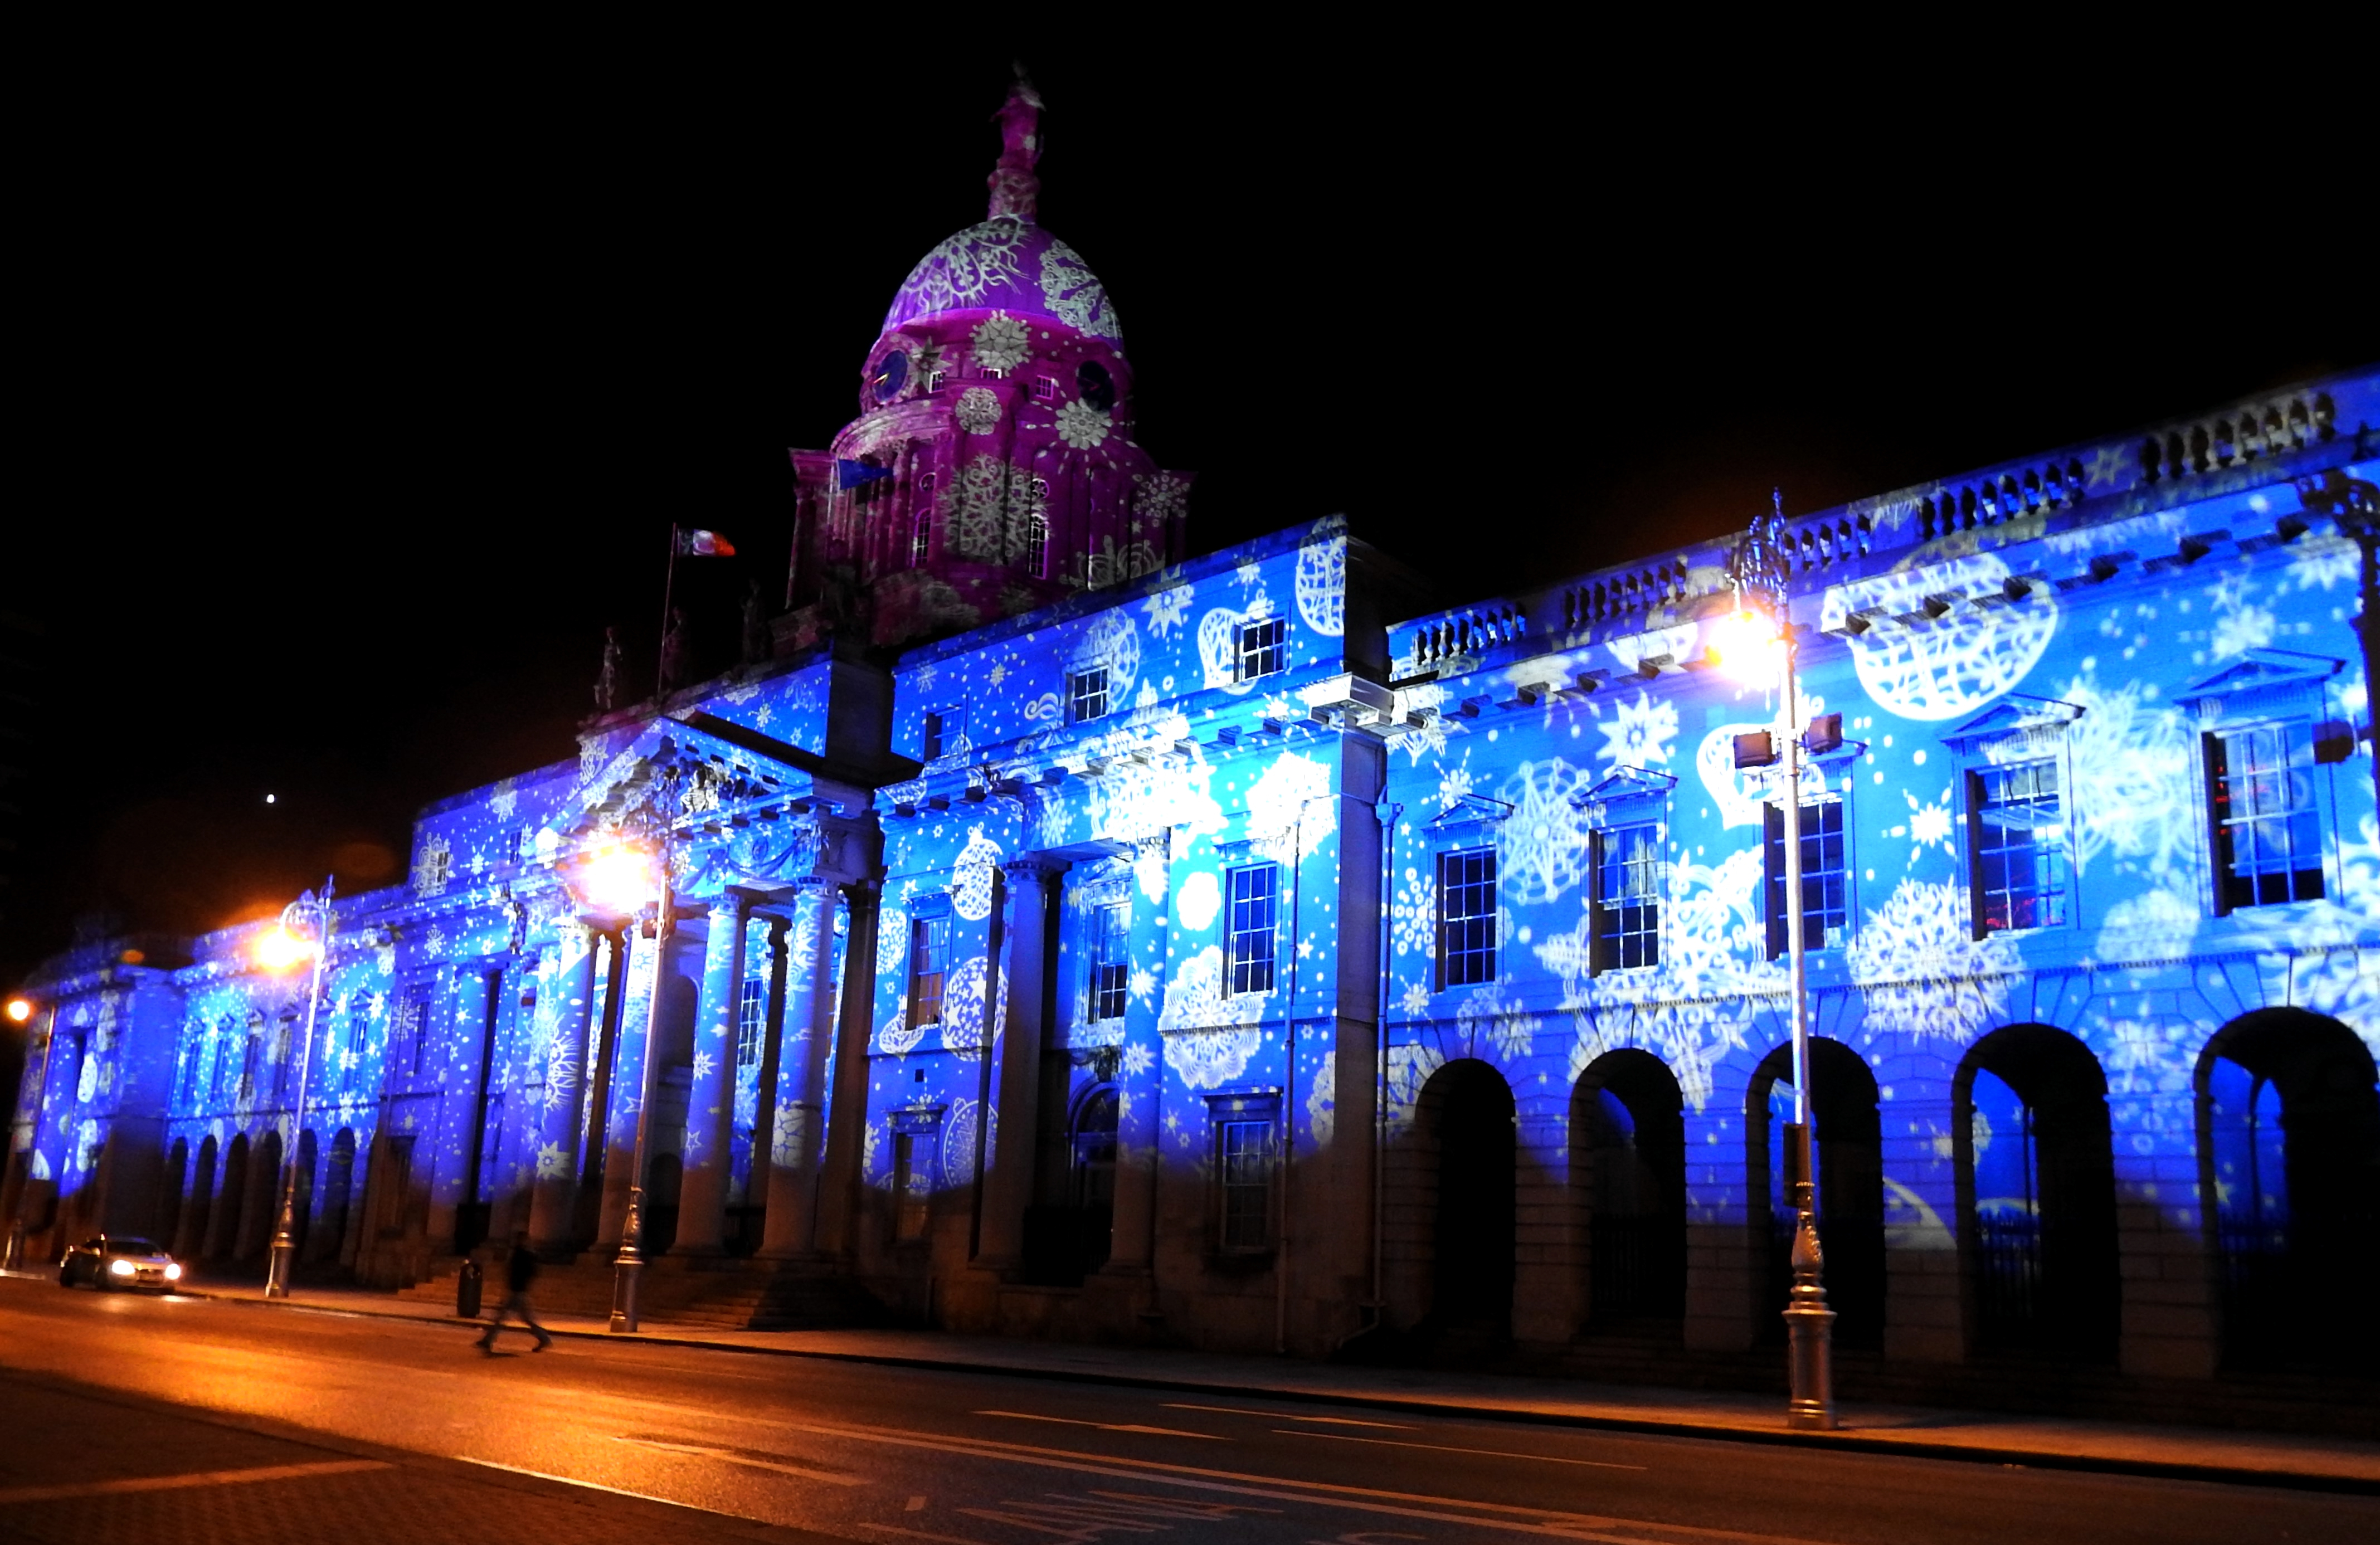 Bright blue and purple snowflakes are projected on an ornate 18th century building at night as part of a Christmas decoration lights display.